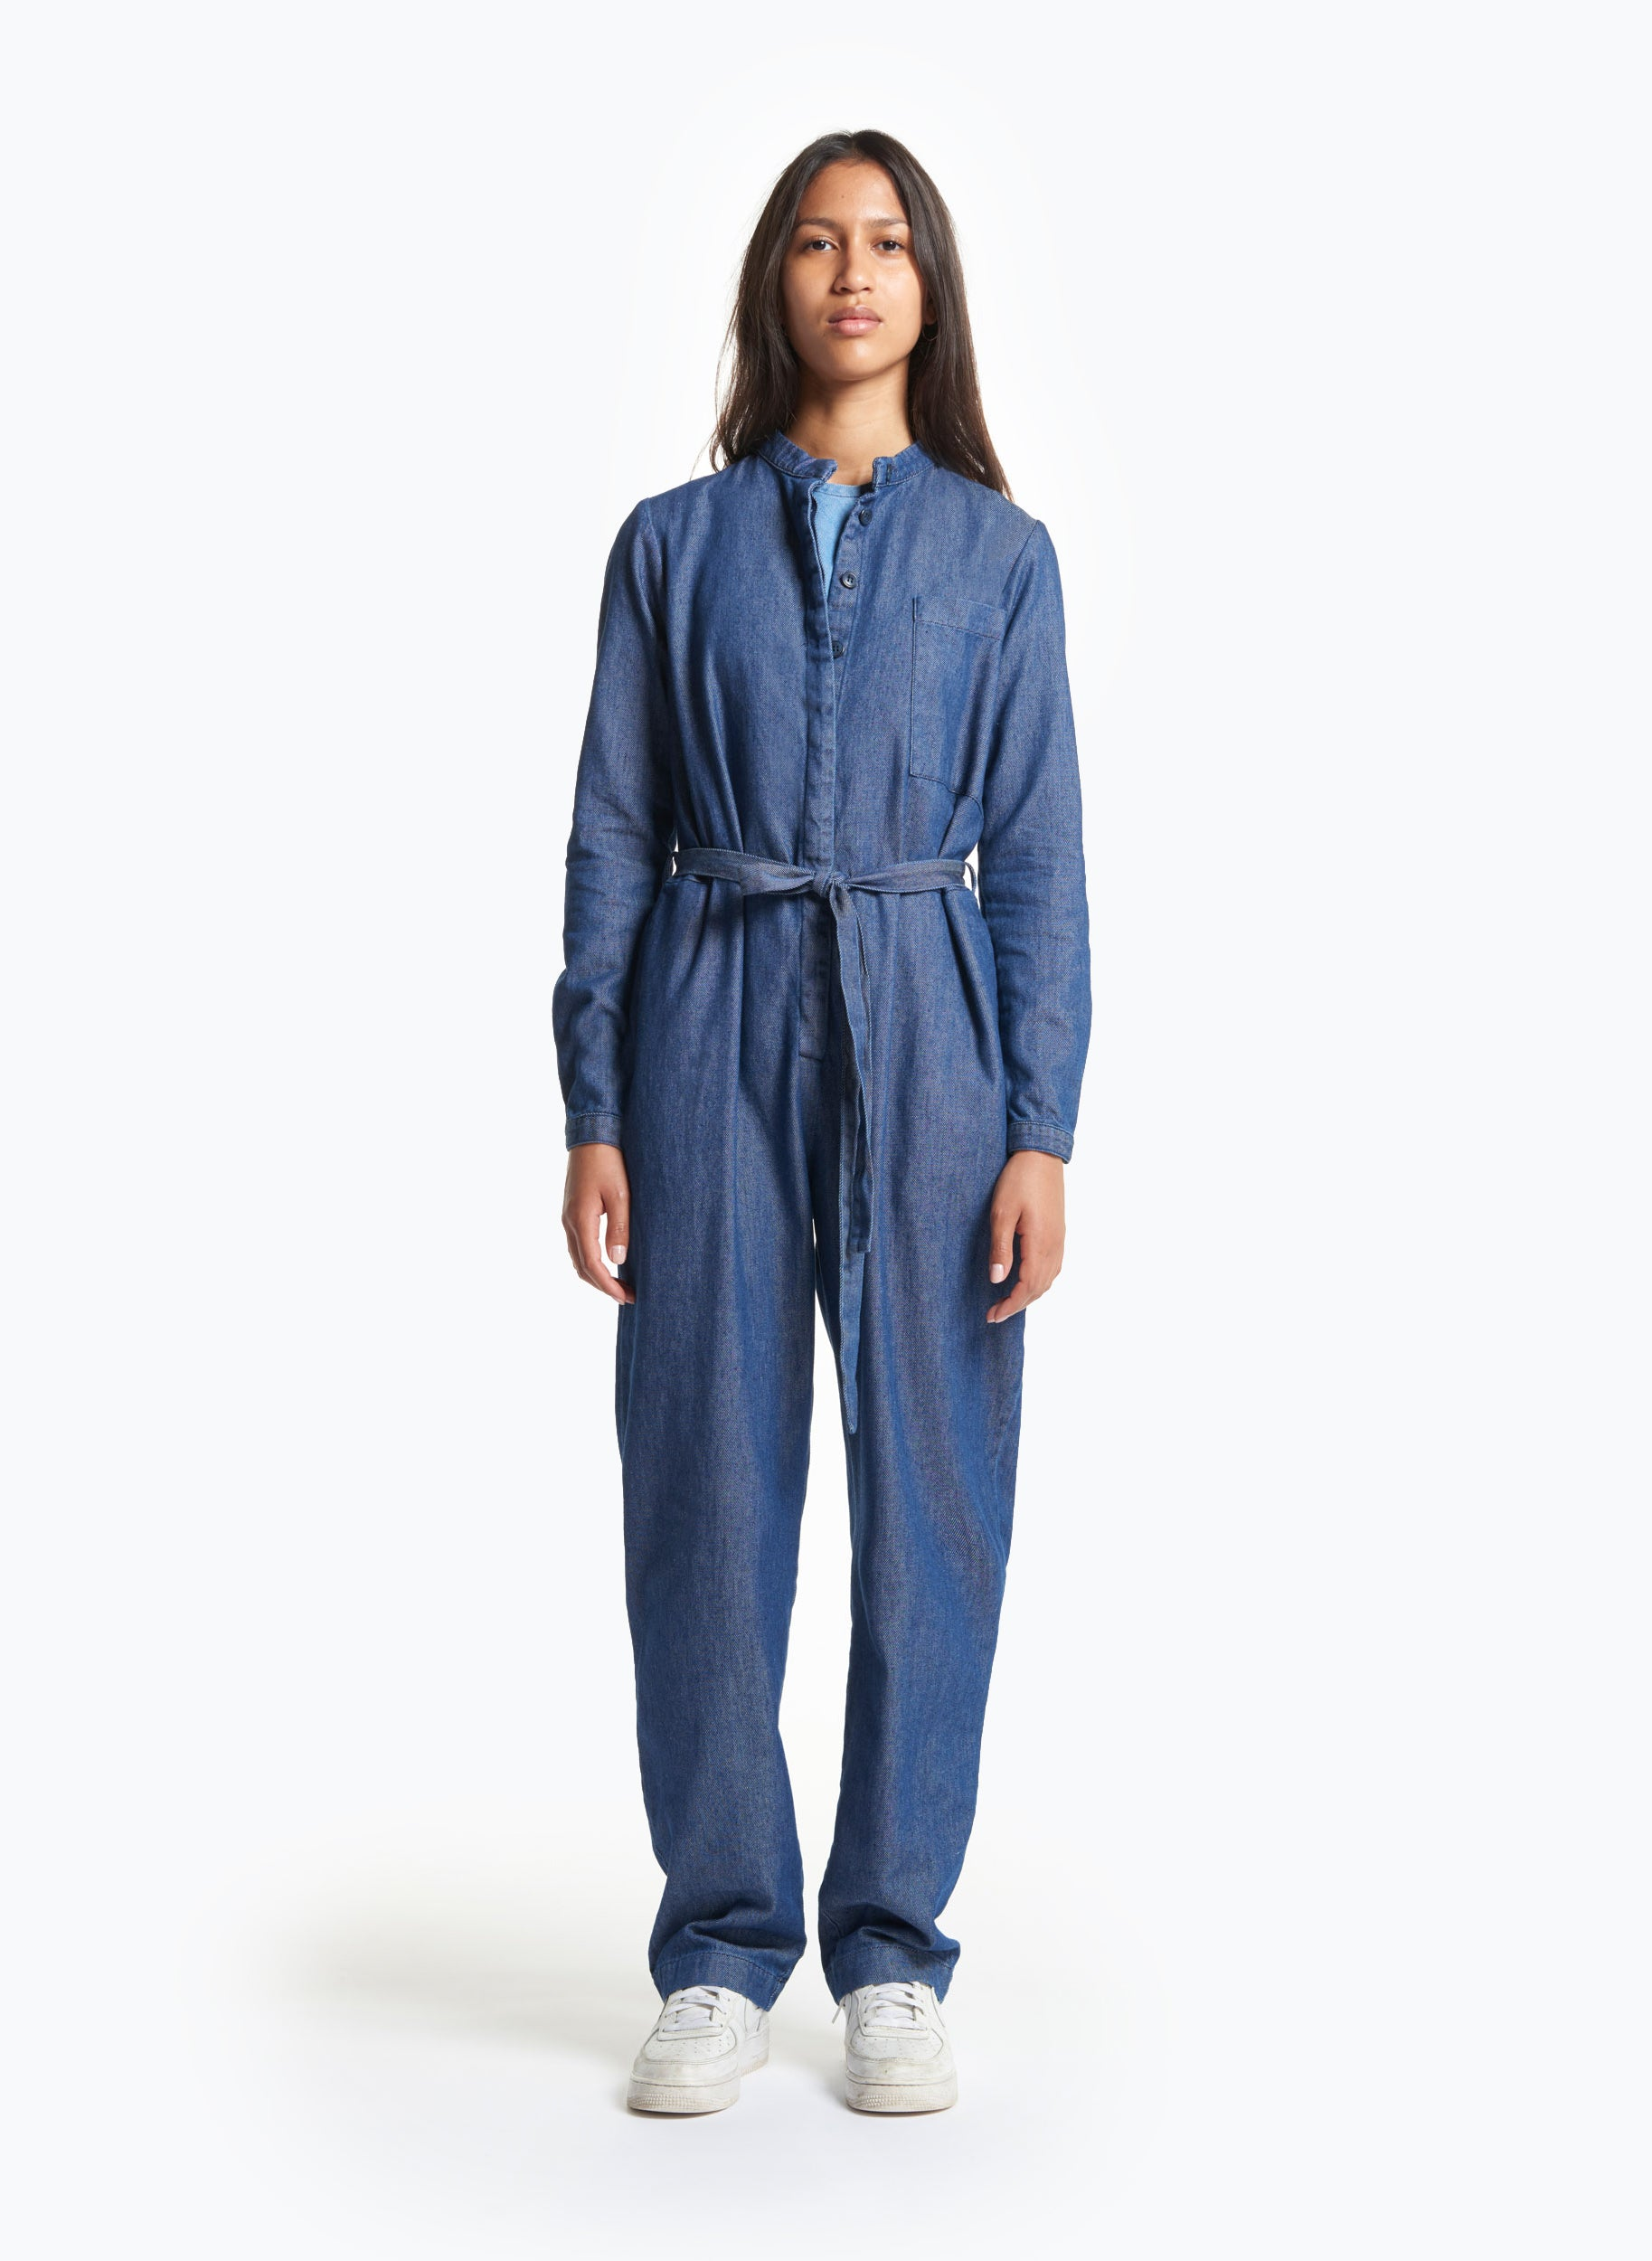 Belted Jumpsuit in Washed Denim